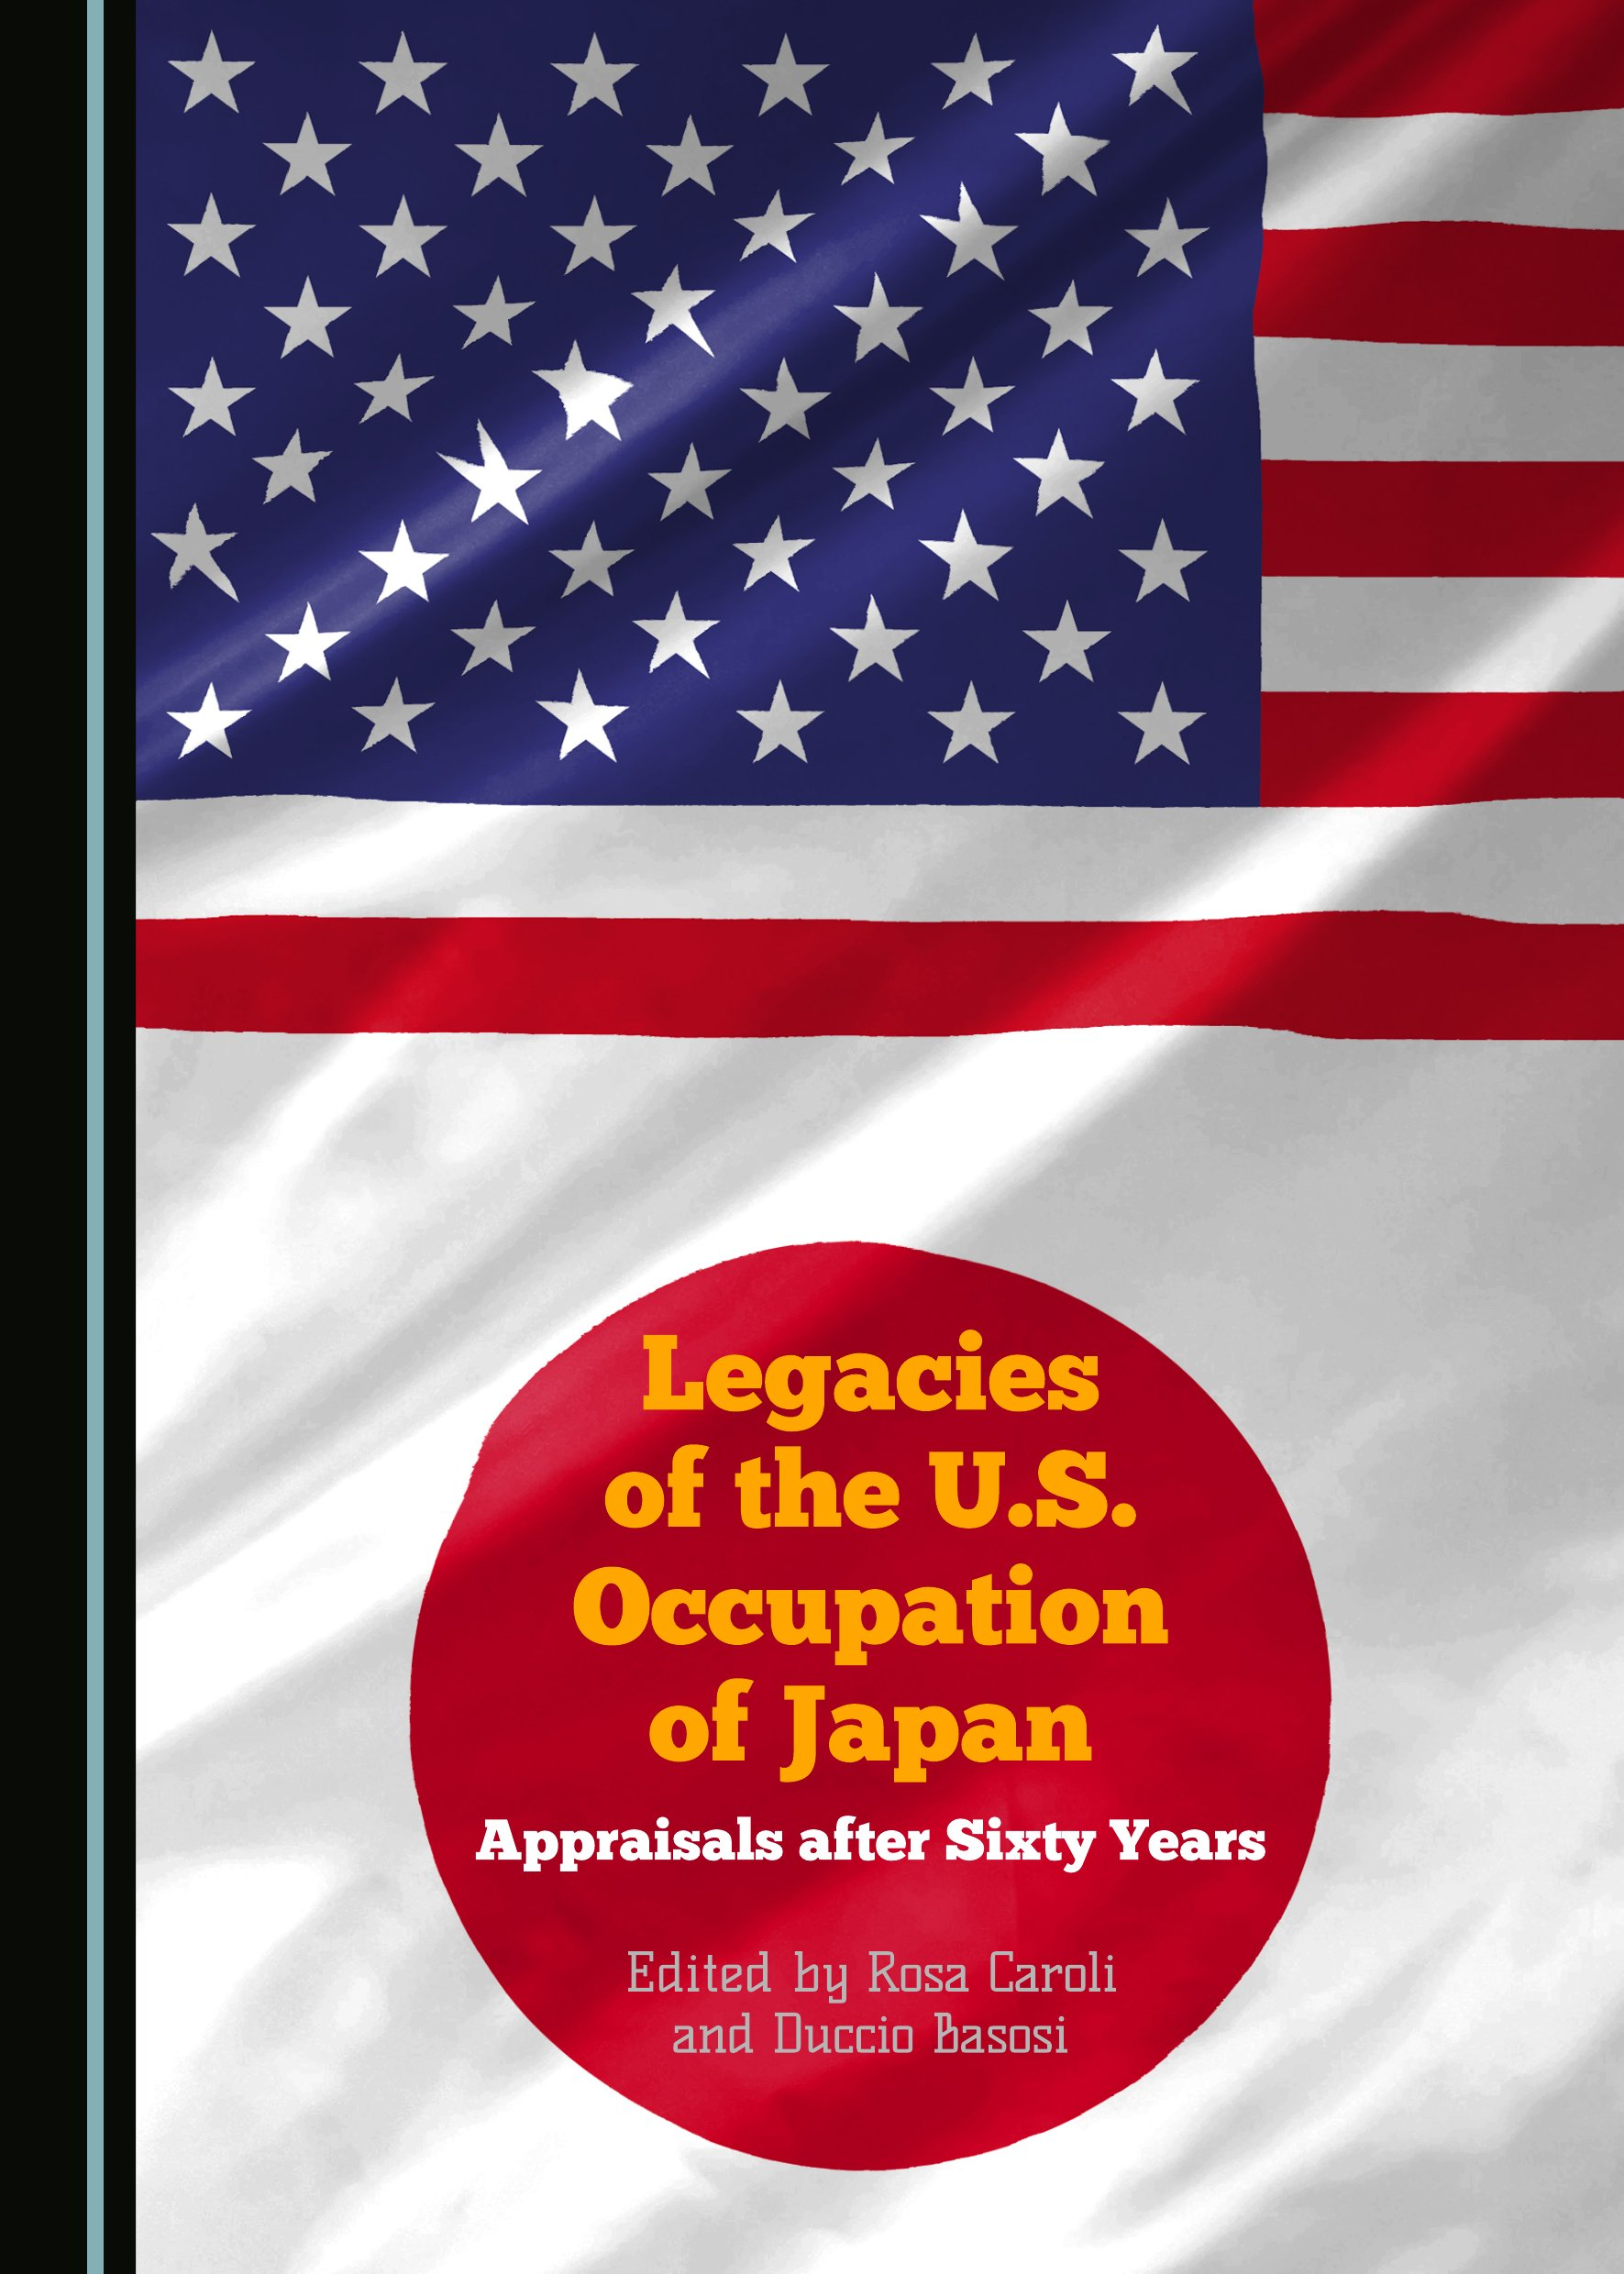 Legacies of the U.S. Occupation of Japan: Appraisals after Sixty Years